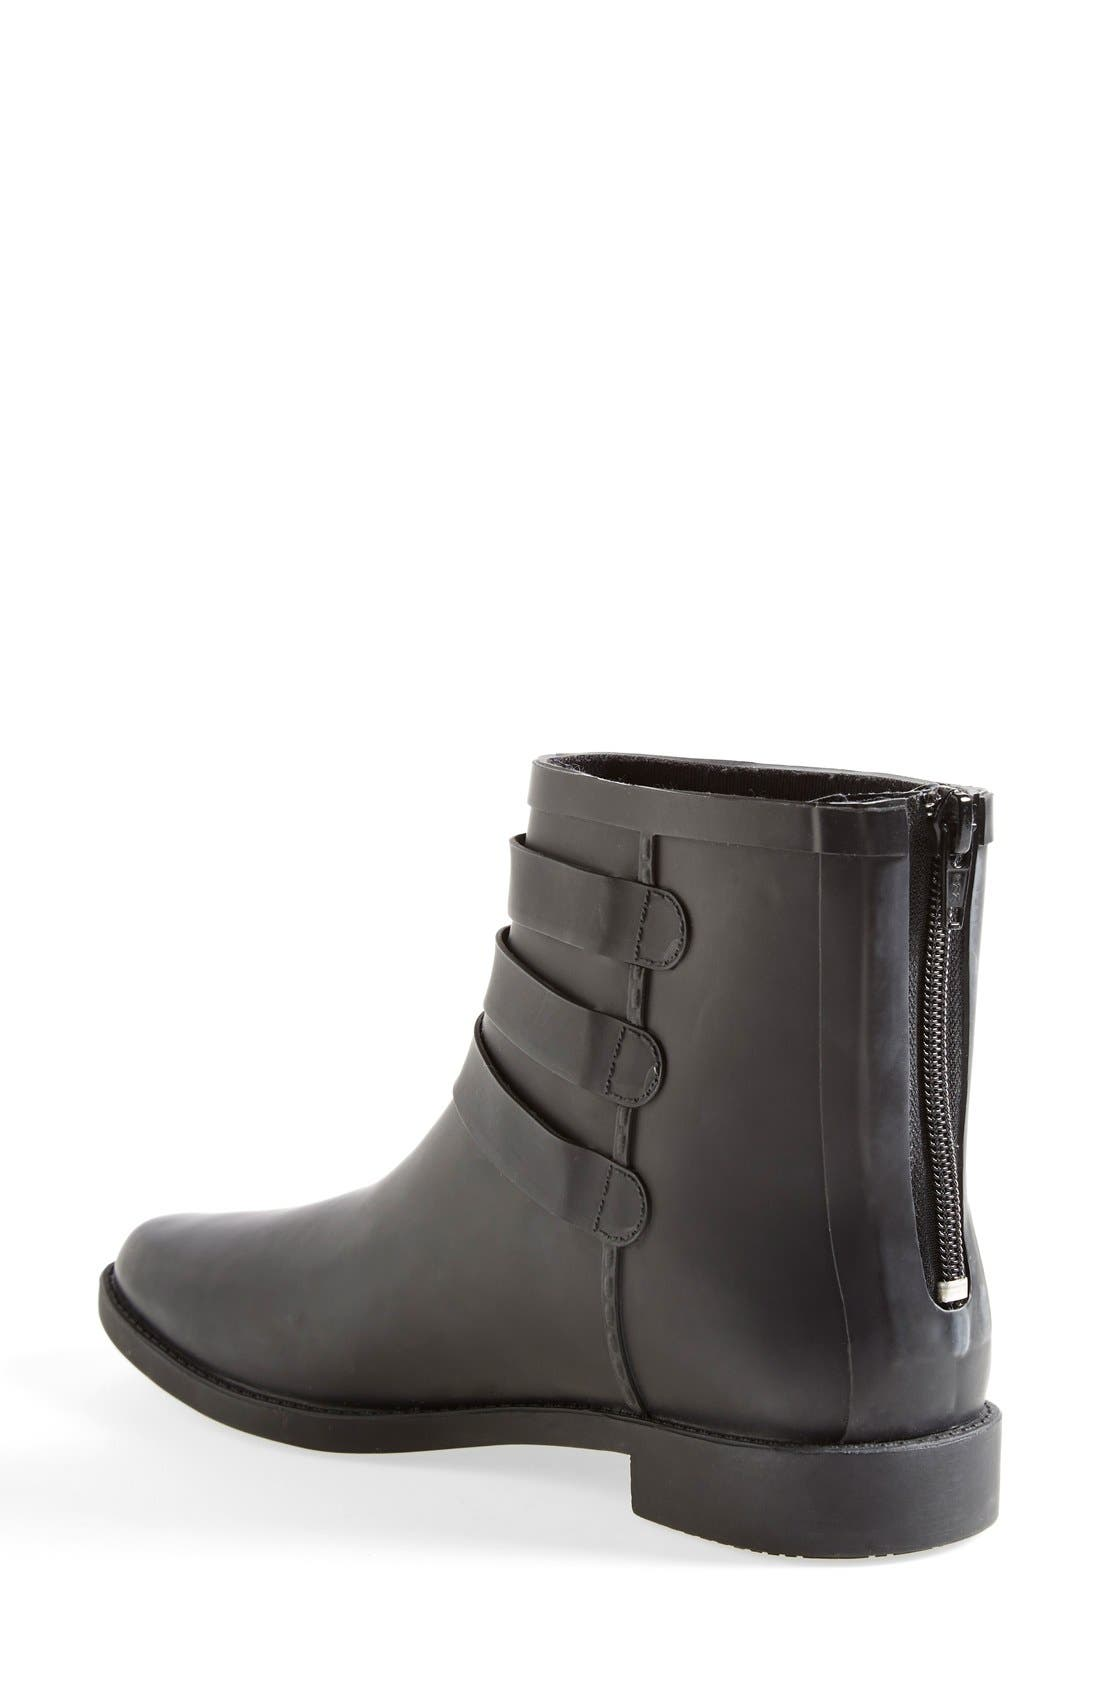 Alternate Image 2  - Loeffler Randall 'Fenton' Rain Boot (Women)